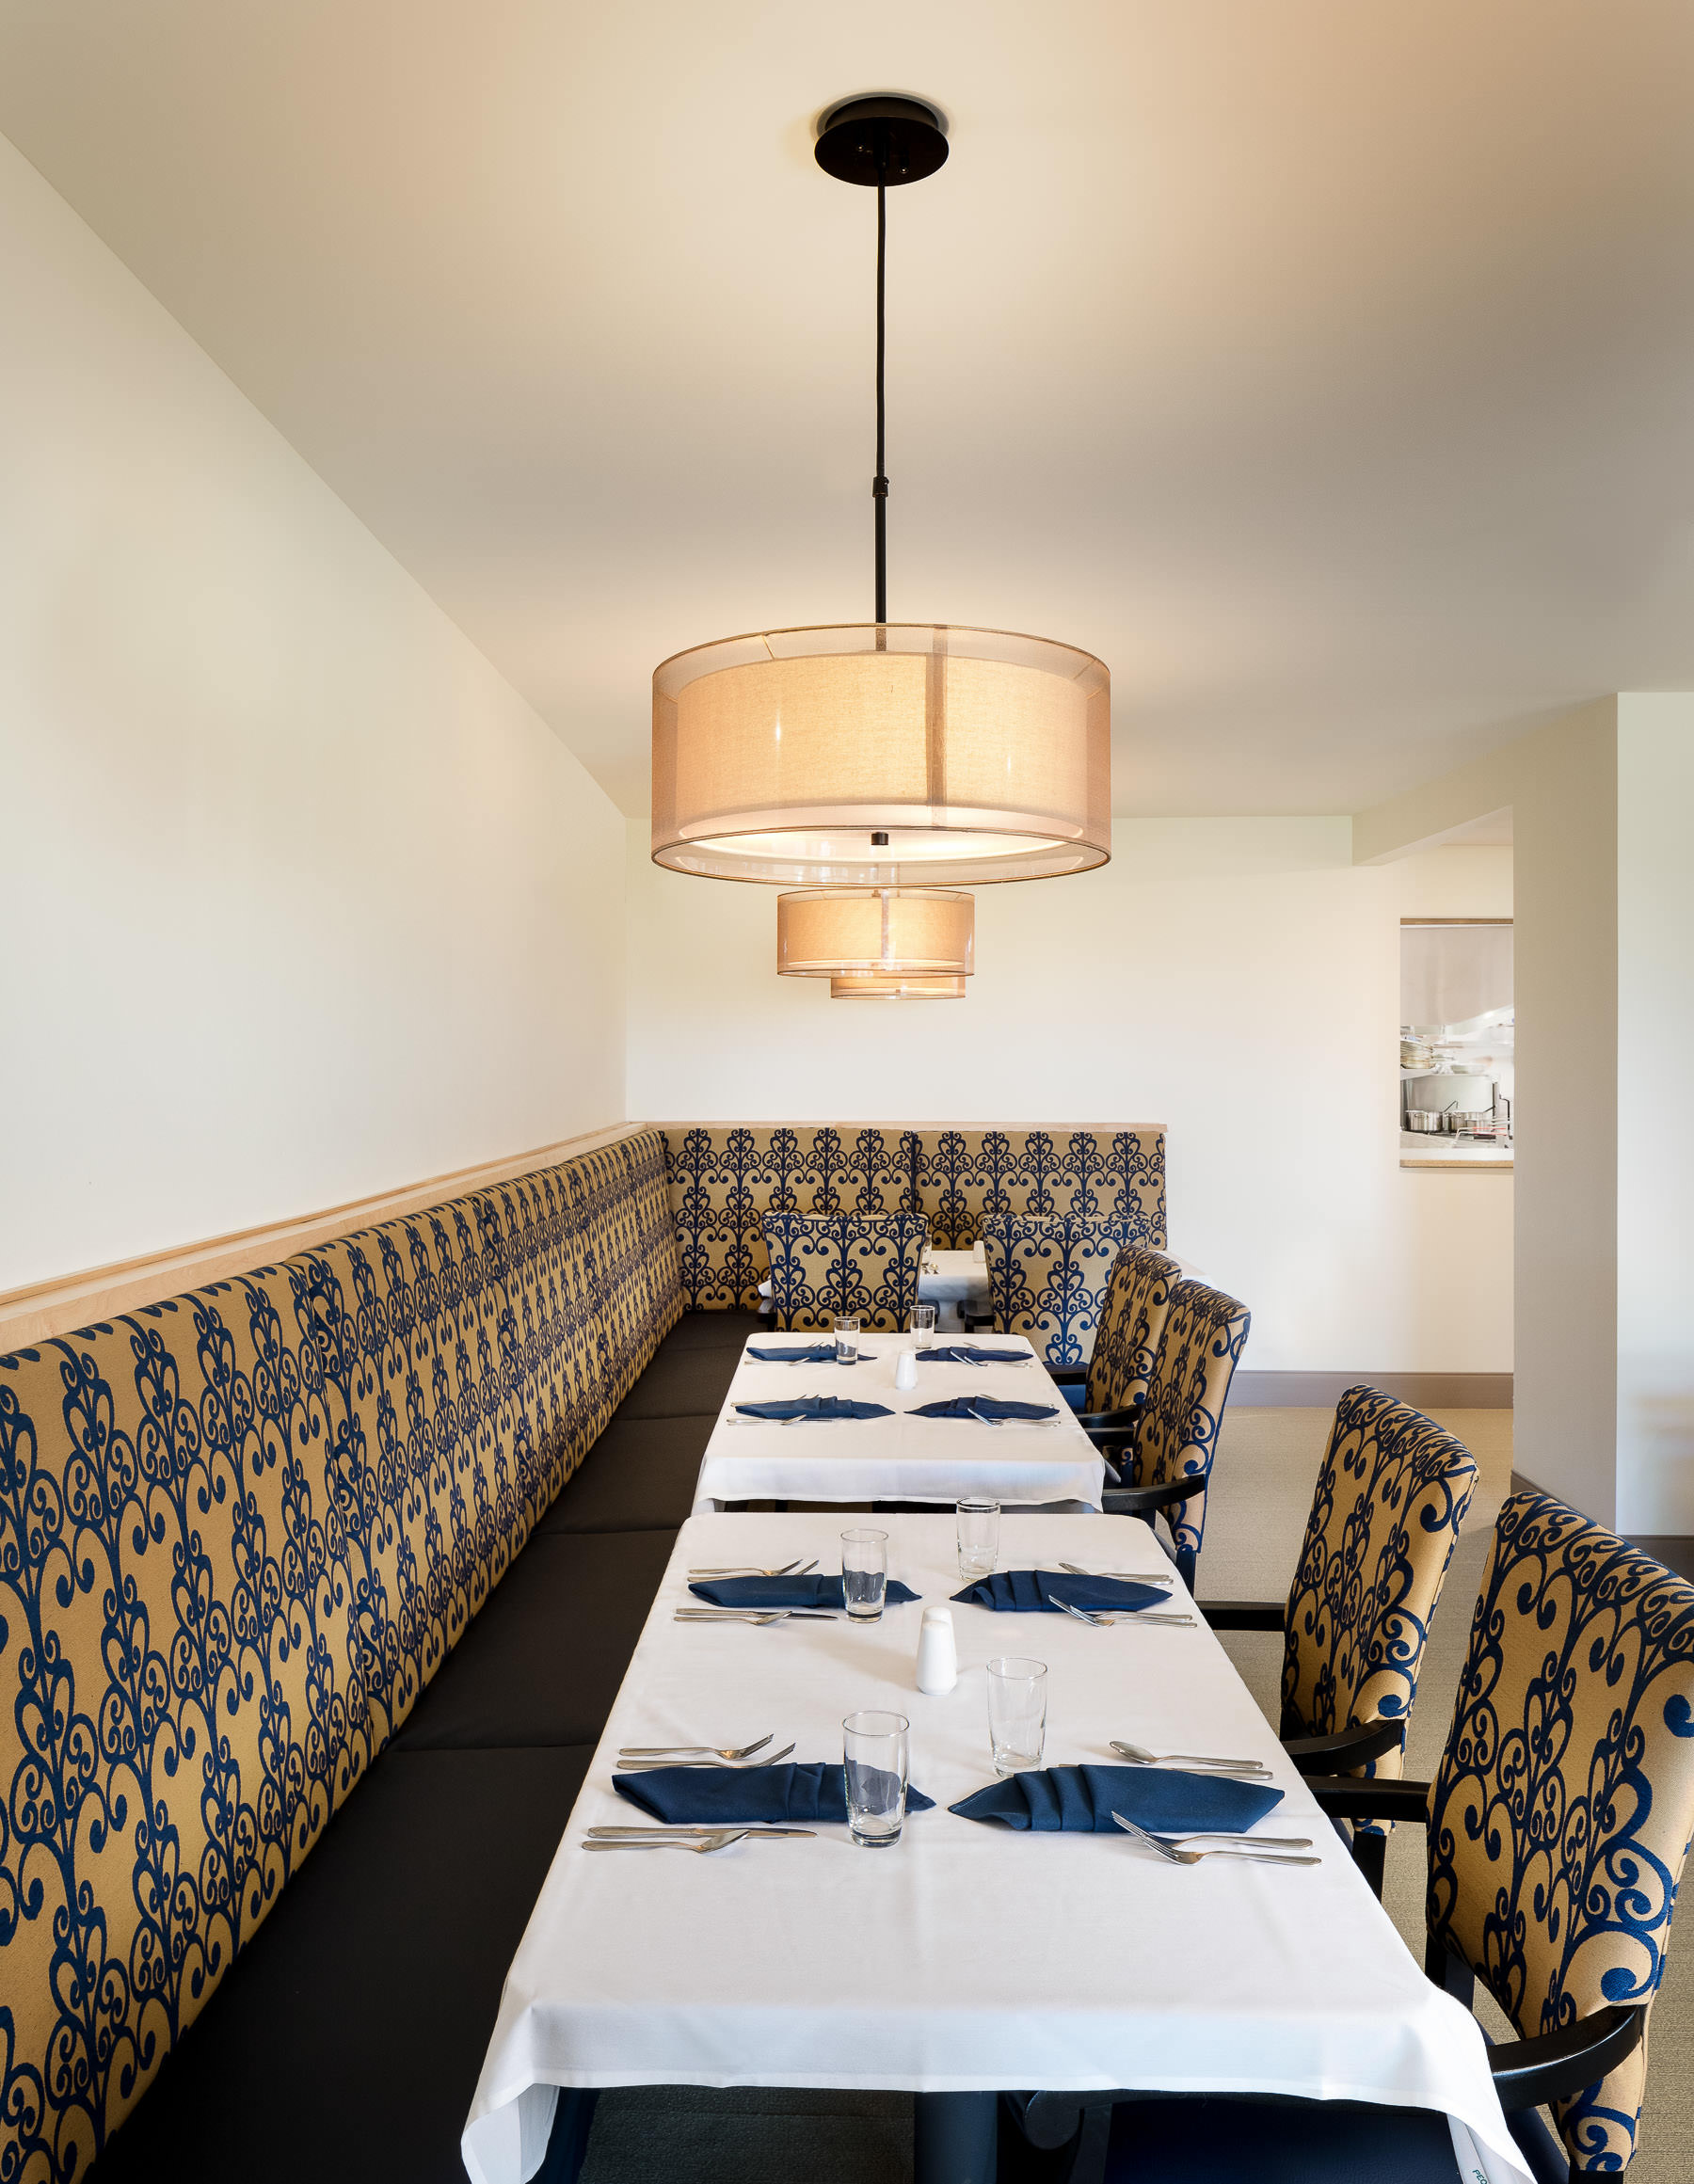 the dining room in the Strode Independent Living Facility in Randolph by Vermont commercial photographer Stina Booth